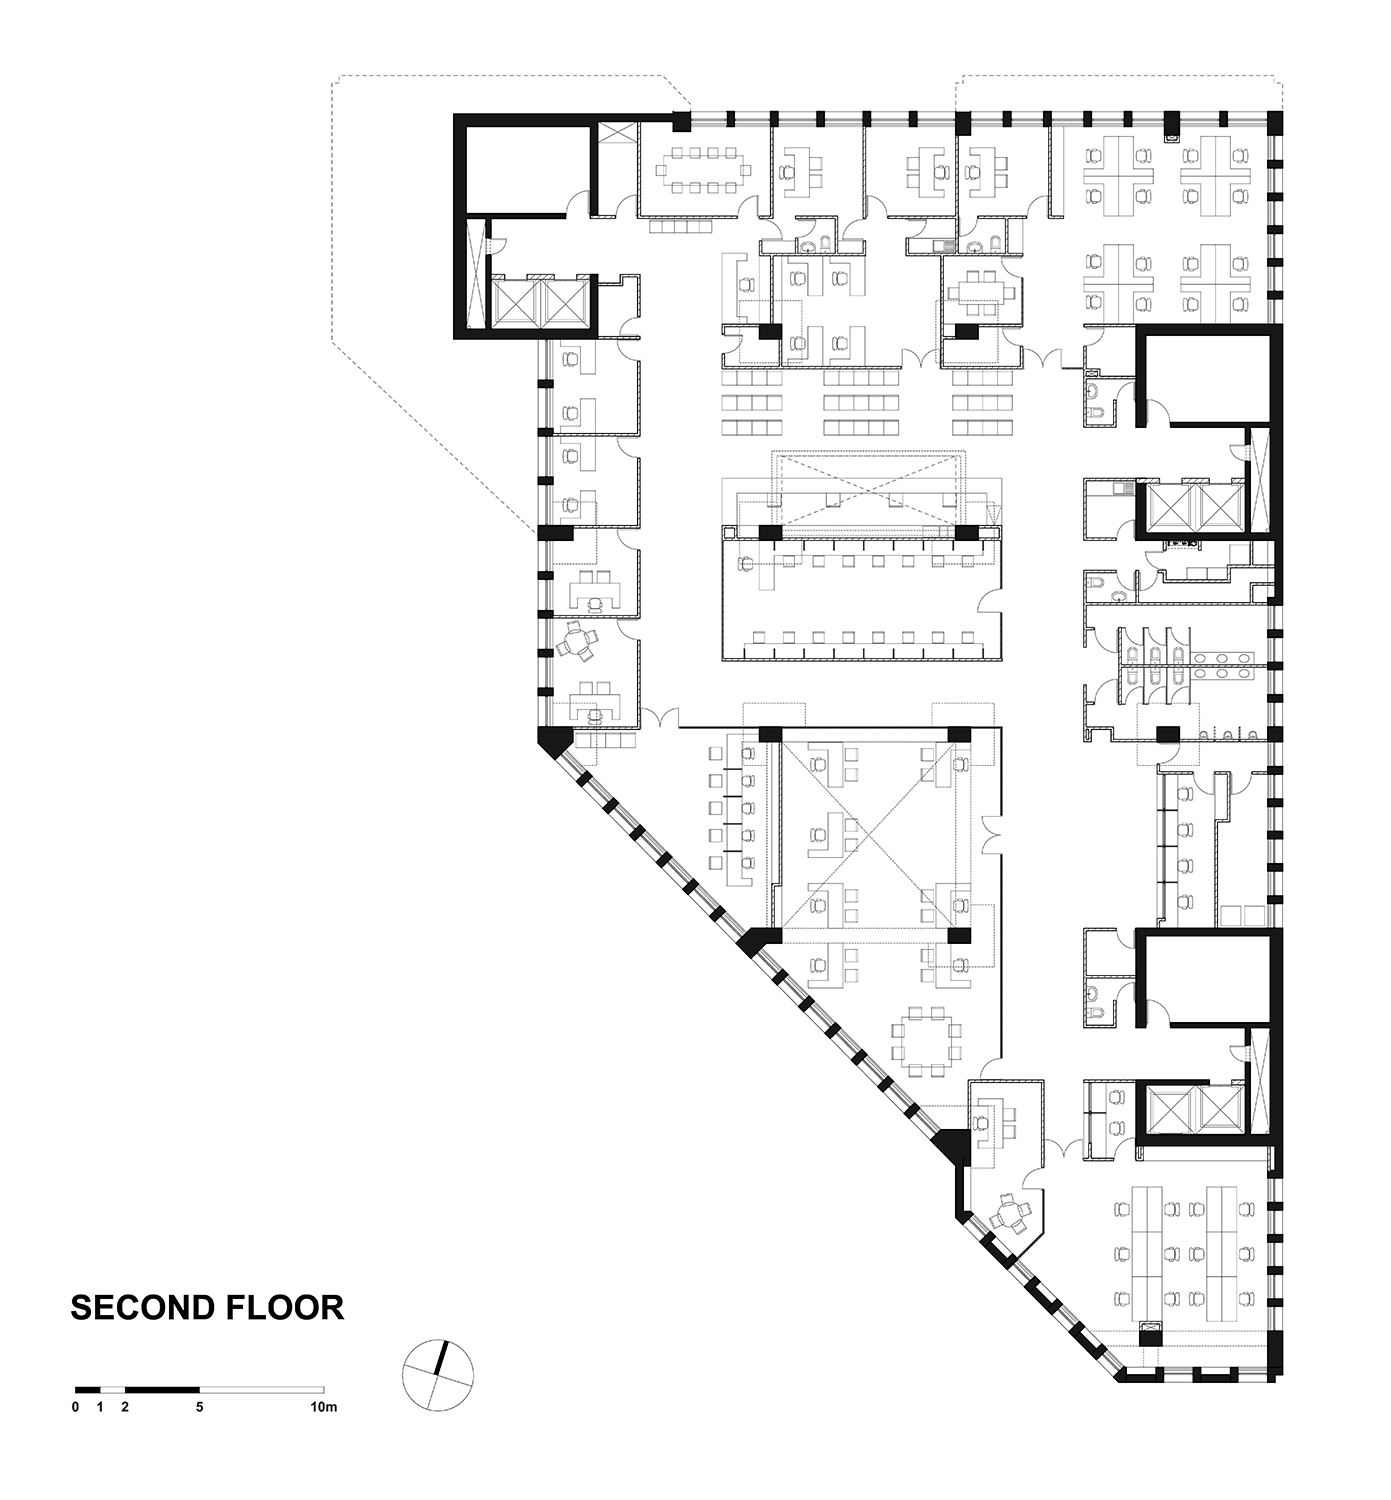 SECOND FLOOR PLAN GONZALO MARDONES ARQUITECTOS}